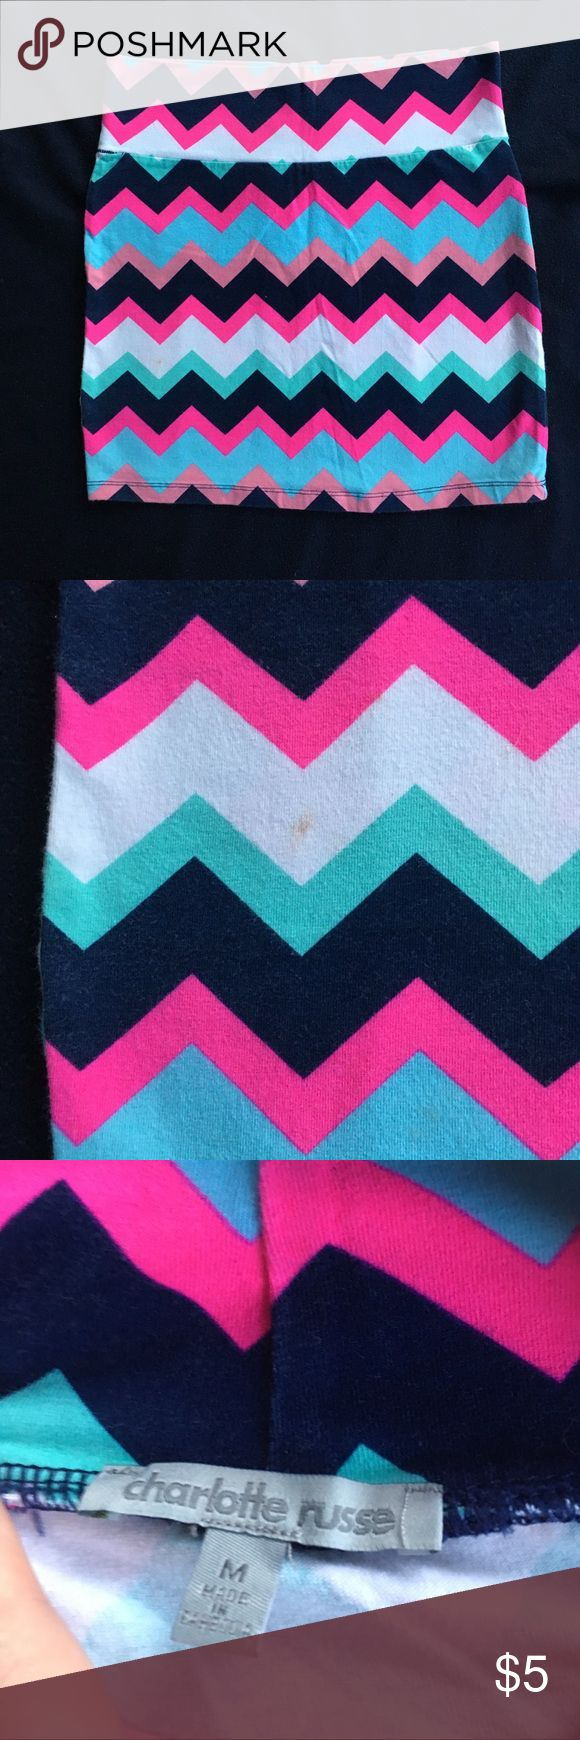 Multi-colored chevron mini skirt Chevron printed mini skirt. The colors are navy, white, coral, hot pink, mint green and robin's egg blue. Very fun and colorful! Fabric has a lot of stretch but this fits SMALL. Small makeup dot on the wearer's right side; very subtle. Add this to any bundle and I will reduce the price to $3.           p Charlotte Russe Skirts Mini